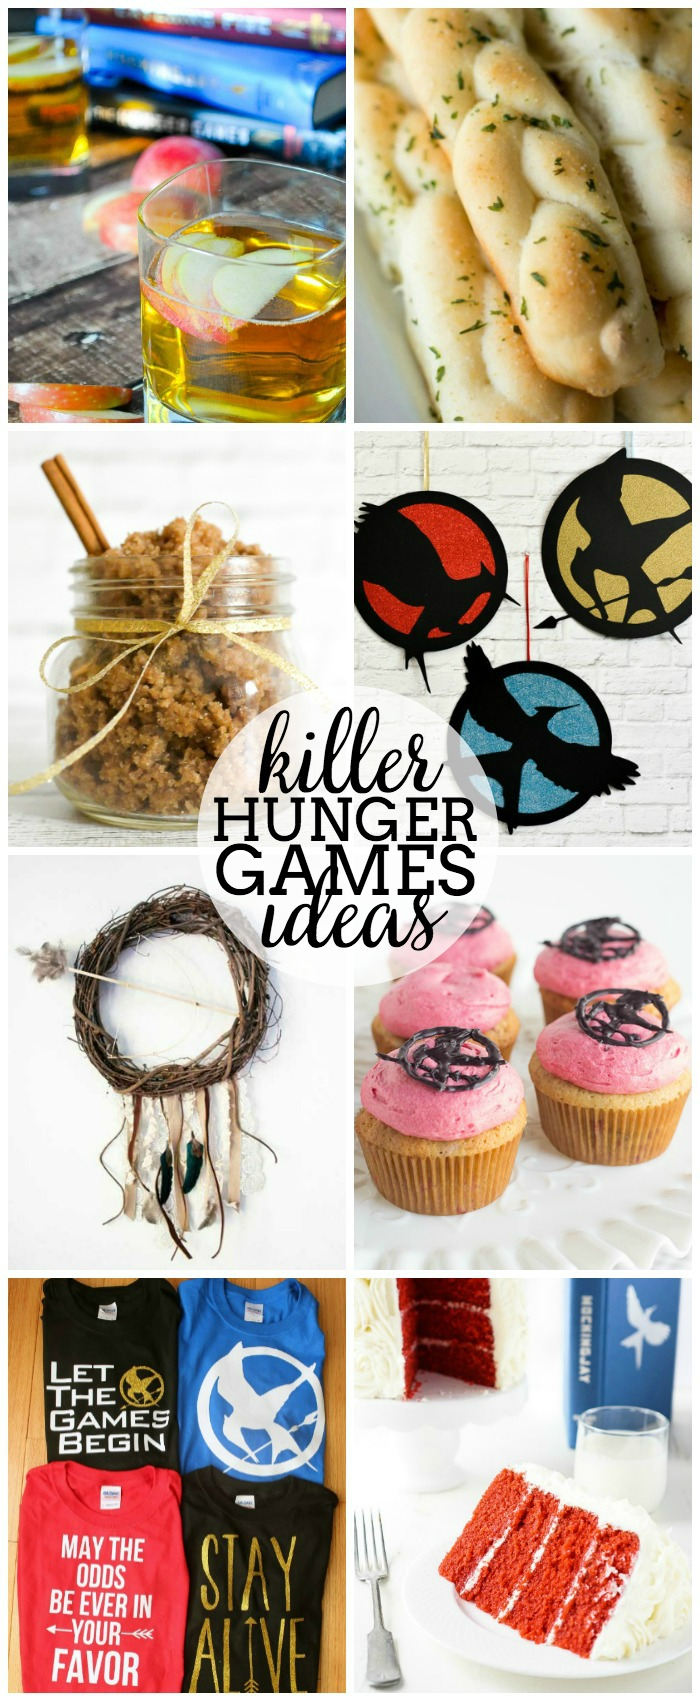 Celebrate the release of Mockingjay Part 2 with these killer Hunger Games Ideas!